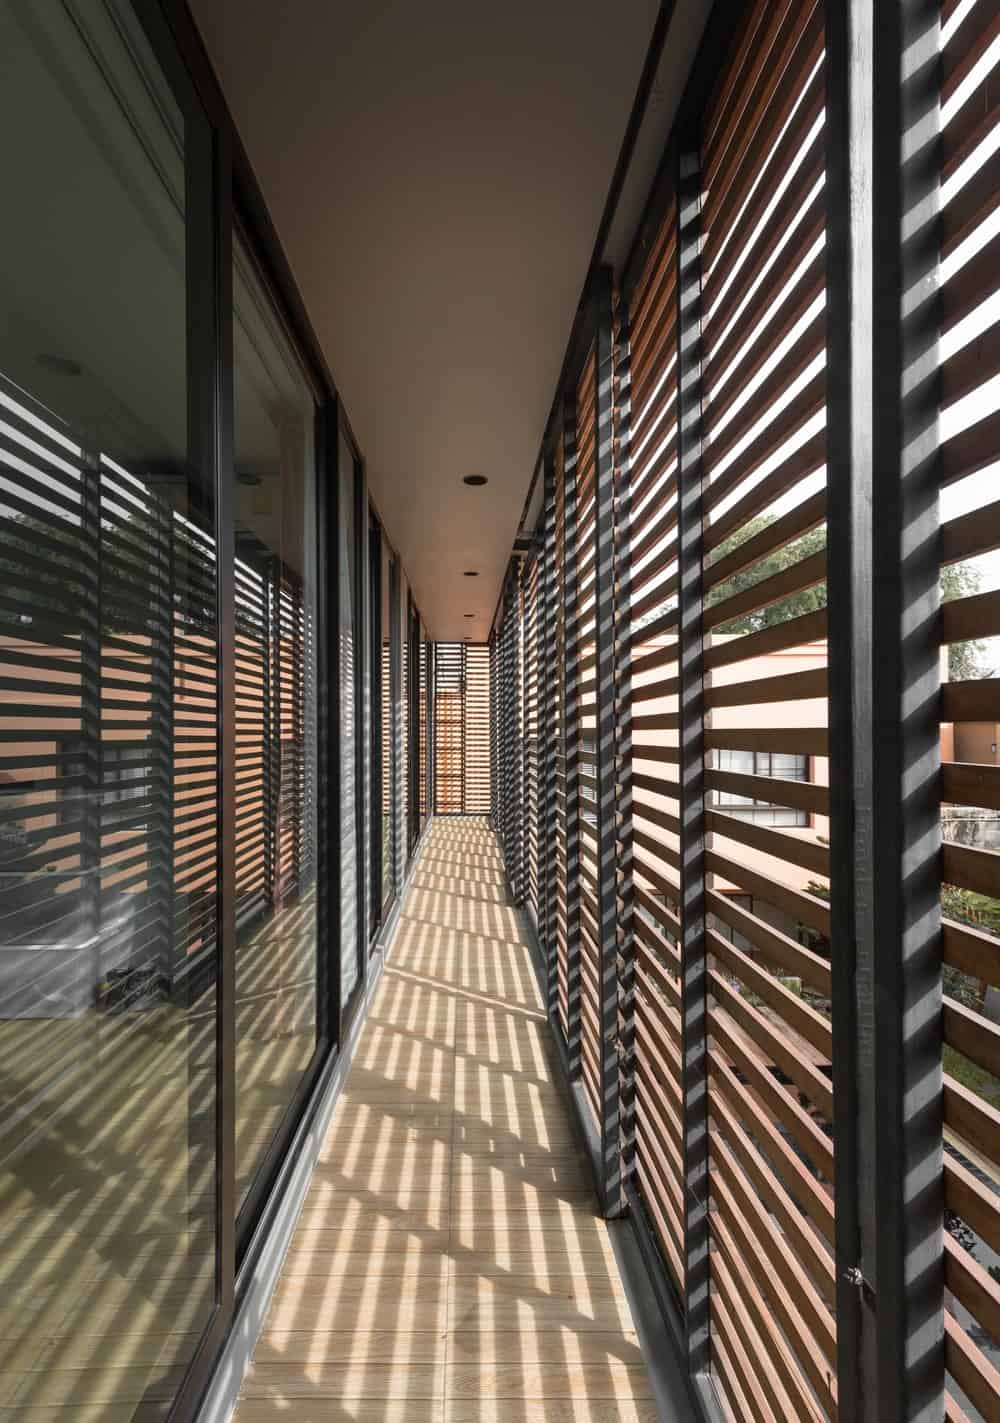 This is the walkway on the side of the second floor beyond the glass walls that also serve as a balcony.